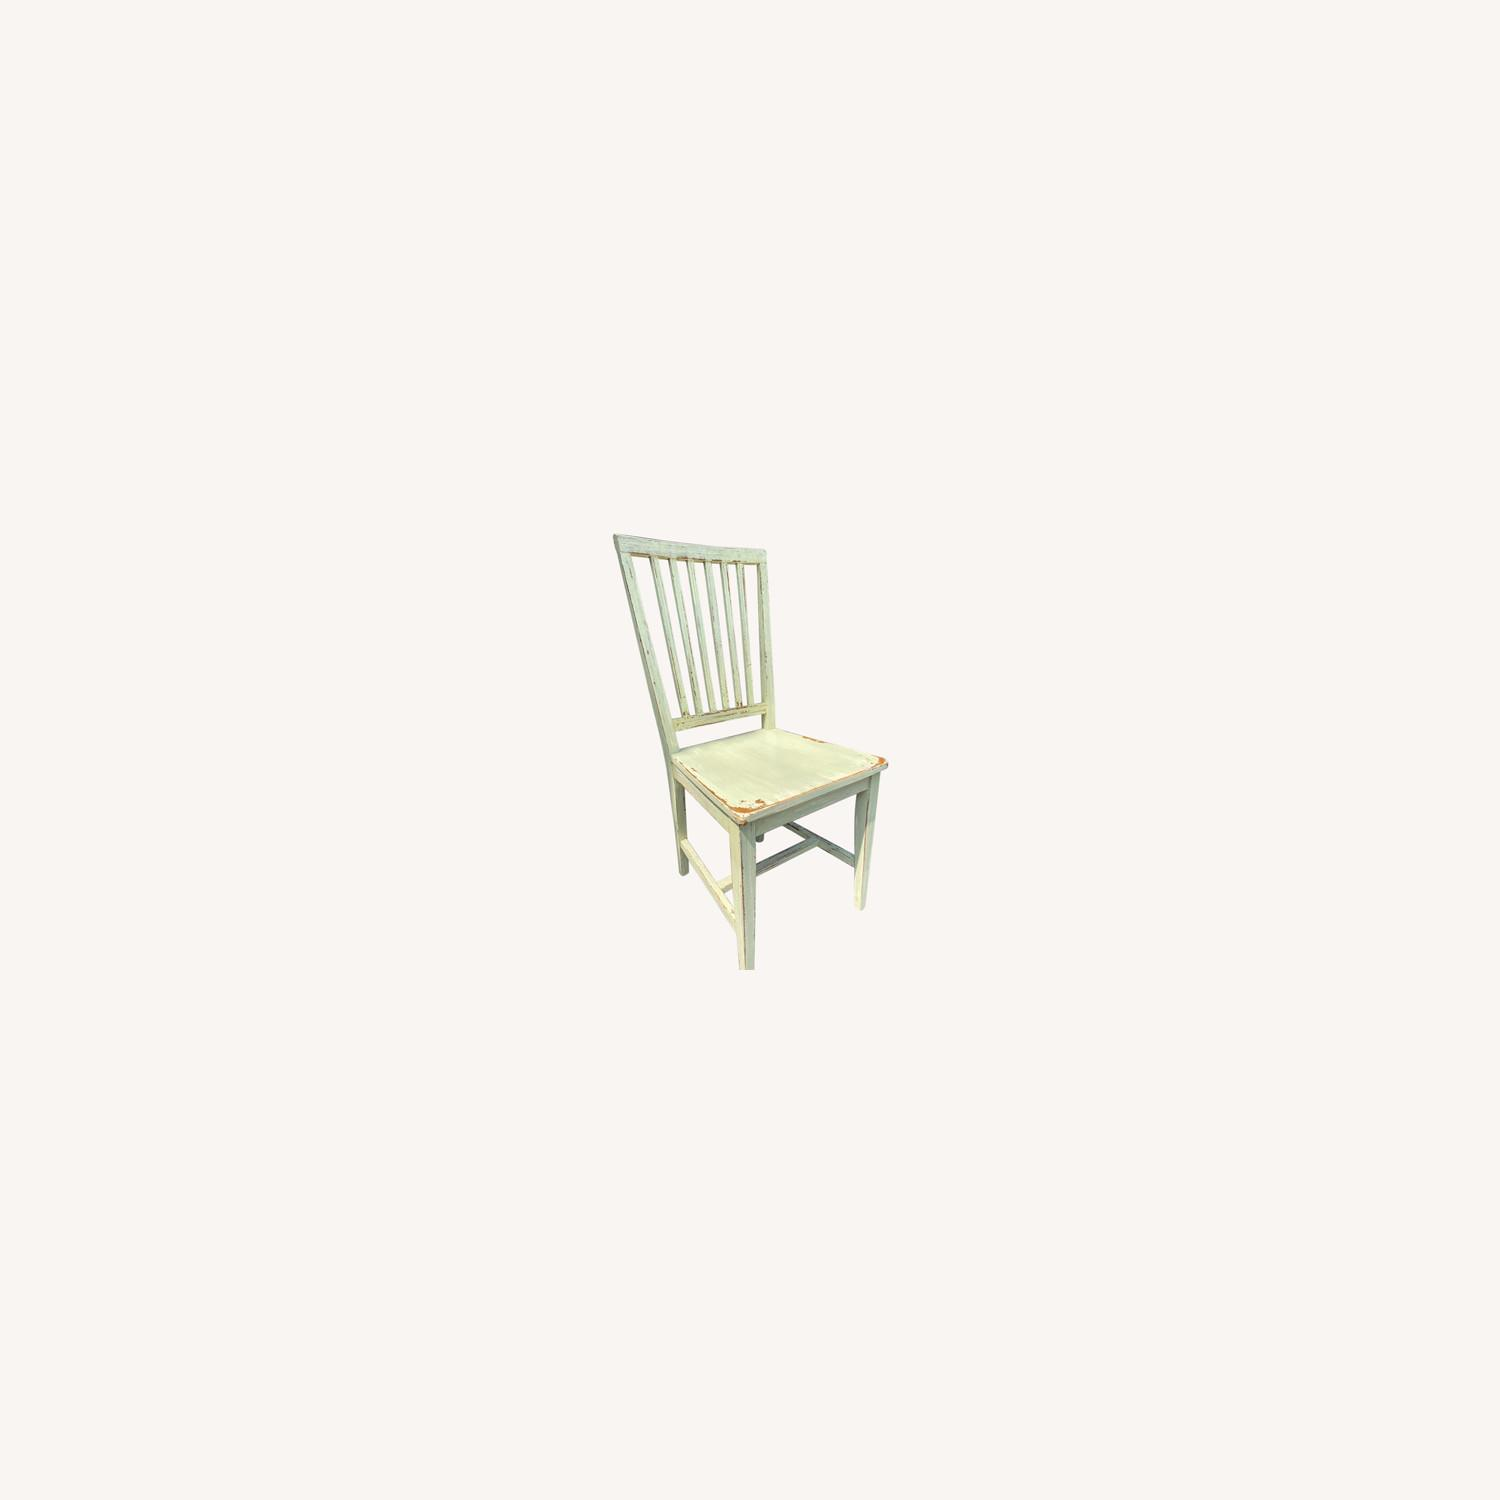 Crate & Barrel Distressed Sage Dining Chairs - image-0